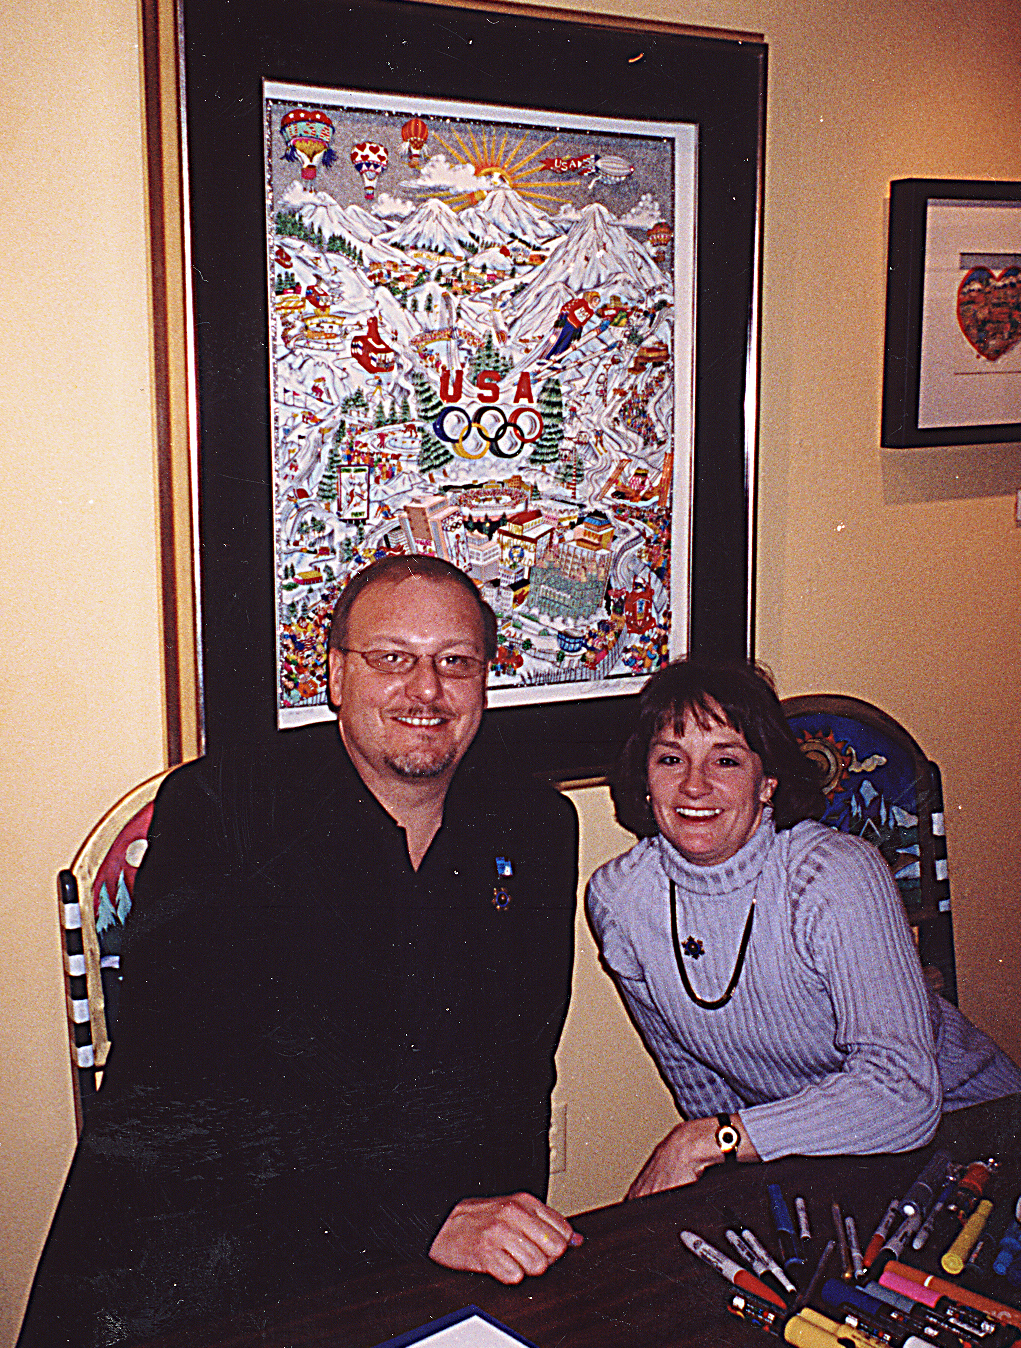 Charles Fazzino and Olympic Gold Medalist Bonnie Blair signing Olympic pop art posters at the 2002 Olympic Games in Salt Lake City